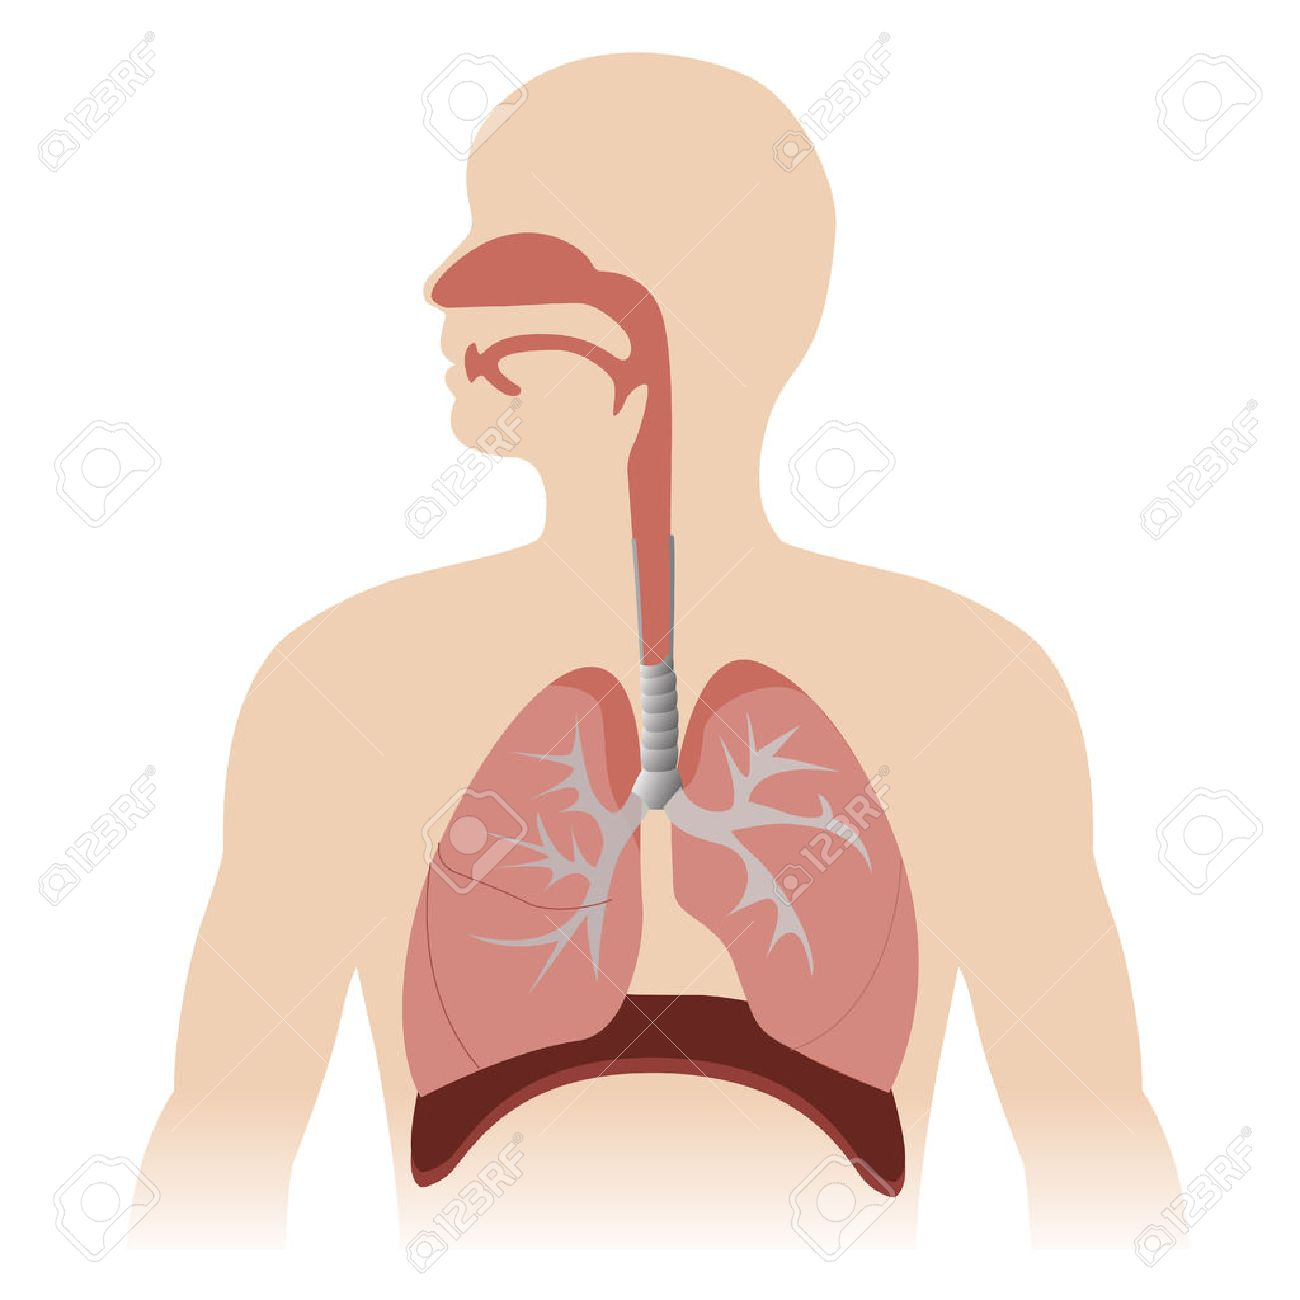 Human Respiratory System Anatomy Vector Format Illustration